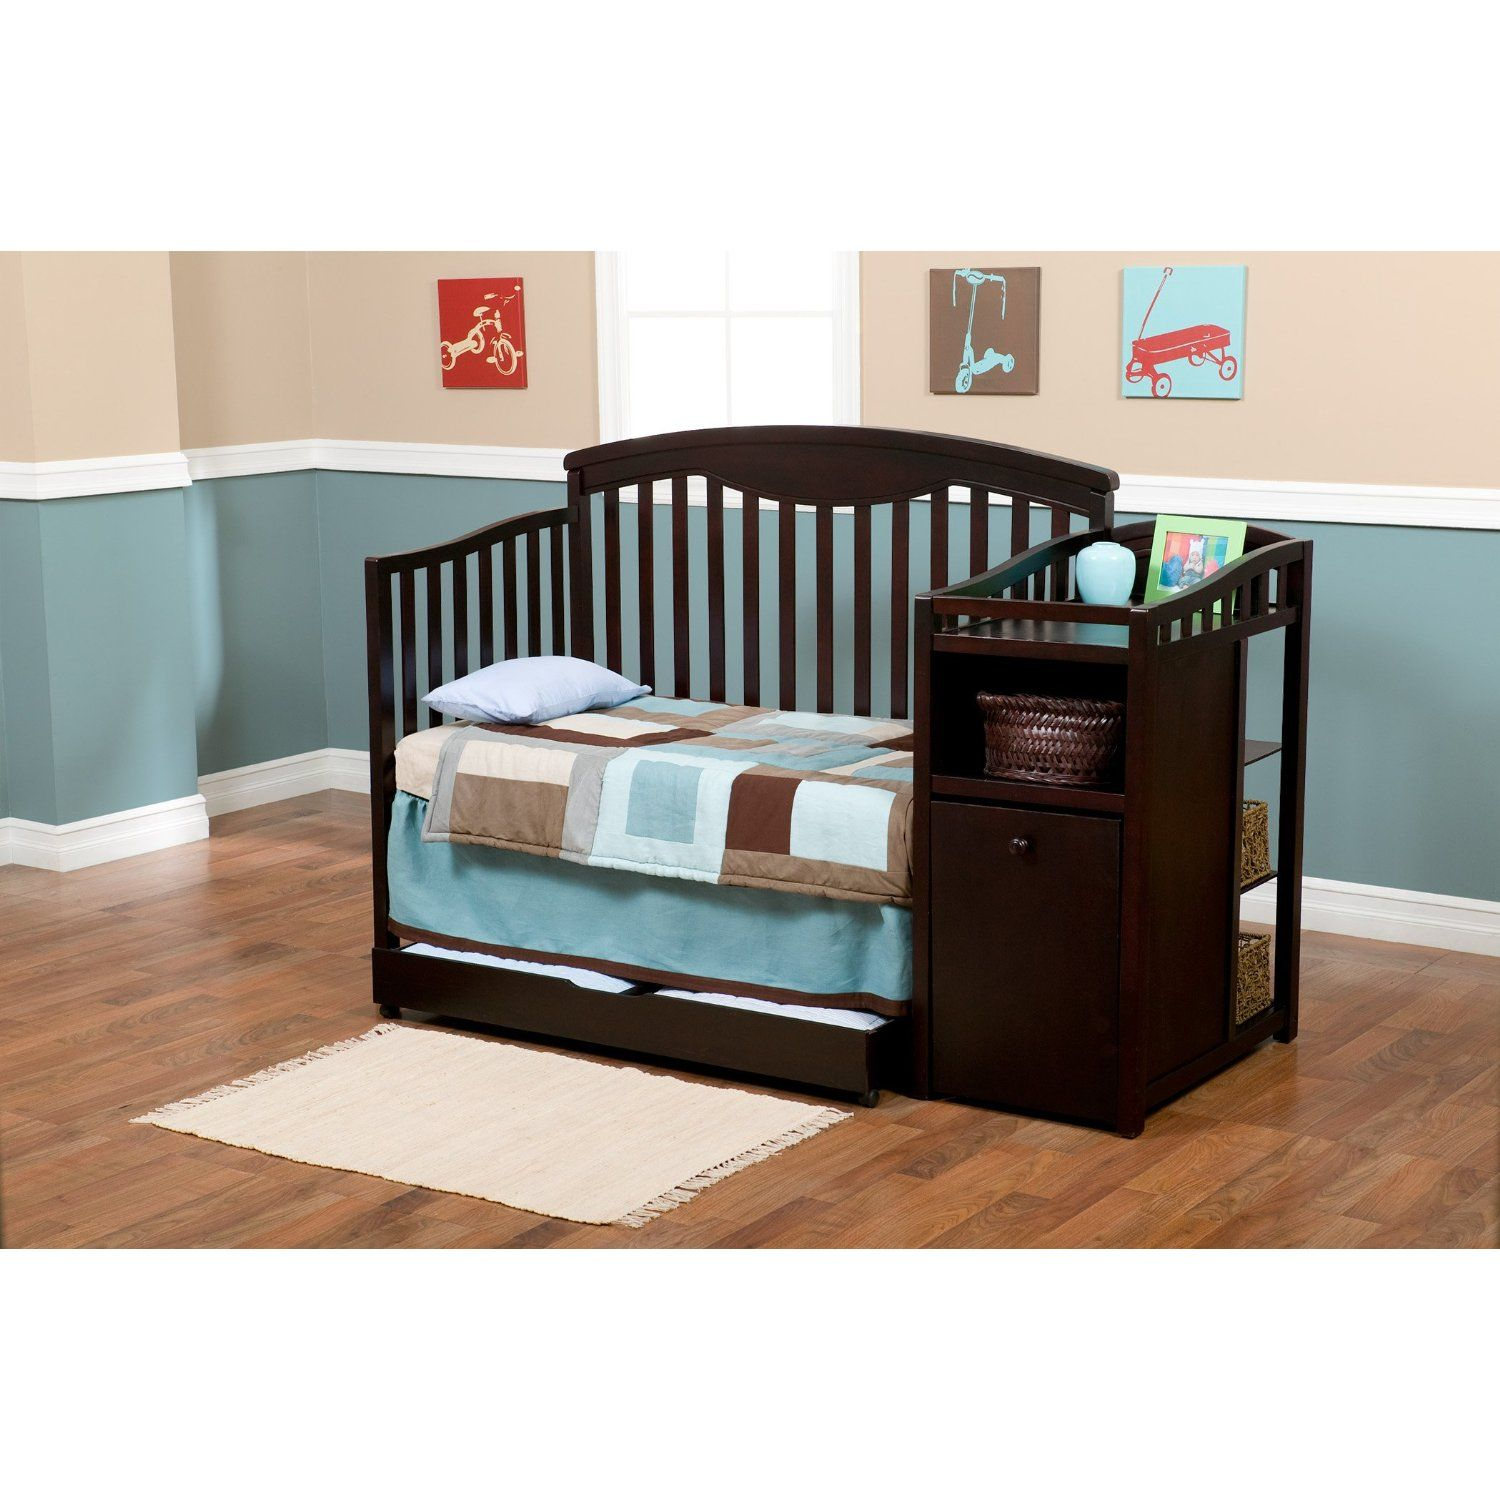 Delta Shelby Crib And Changer Baby Furniture Sets